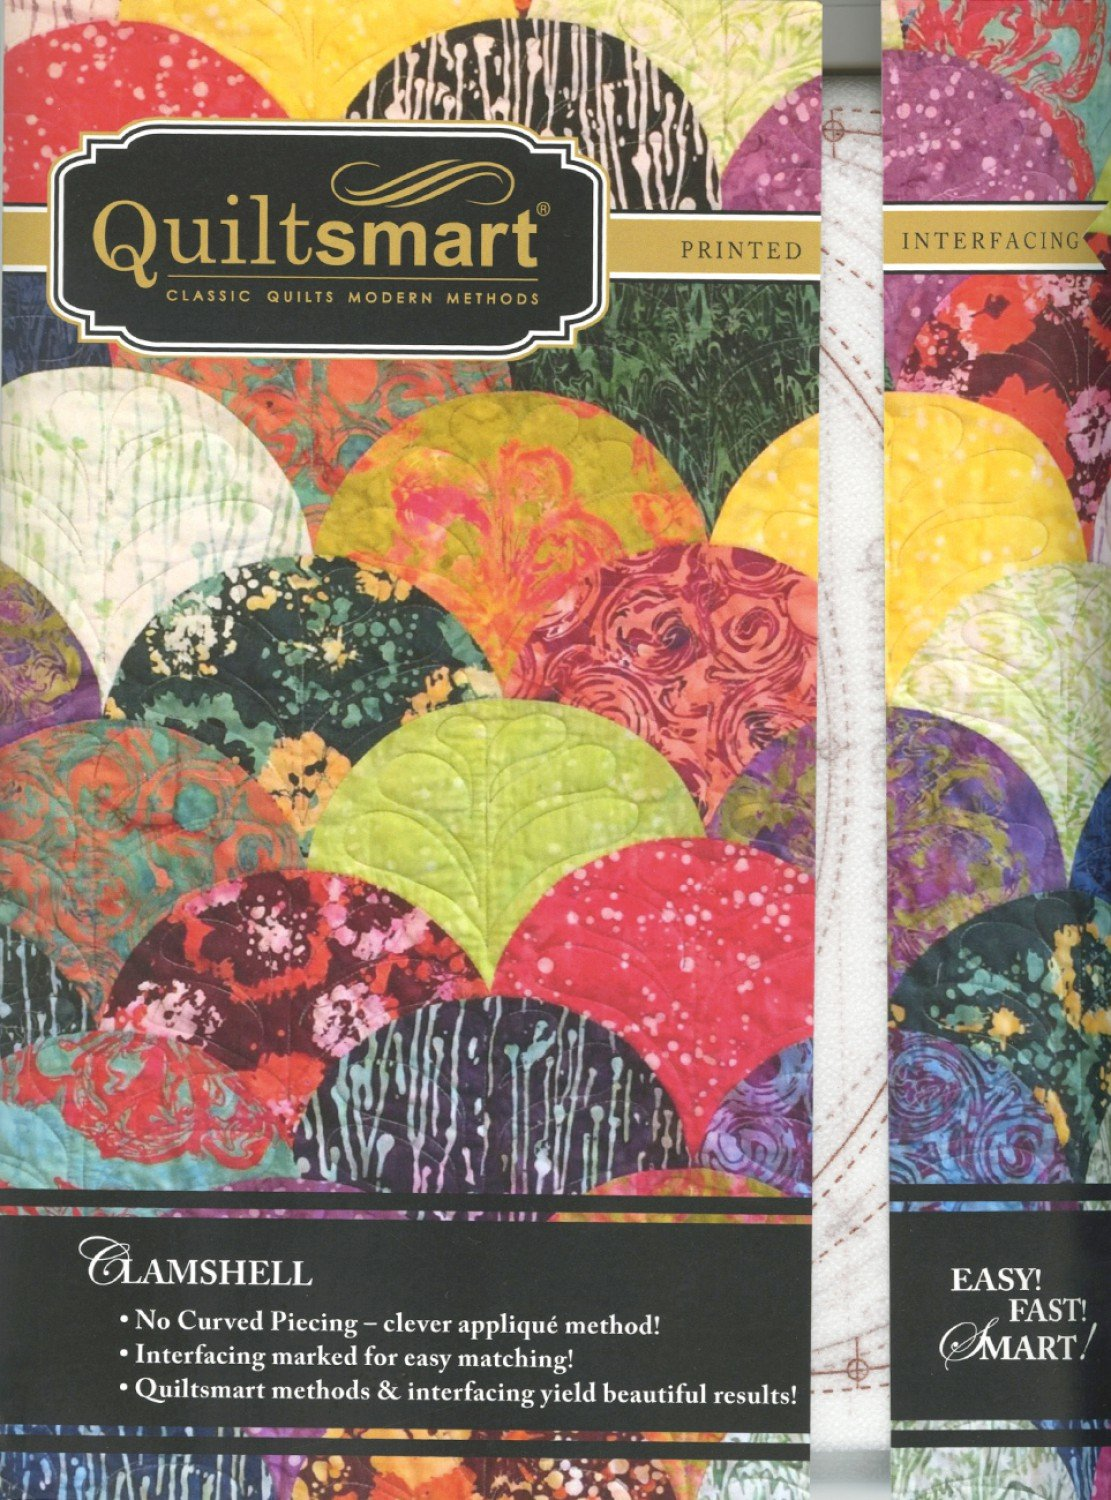 Quiltsmart-Clamshell Classic Pack